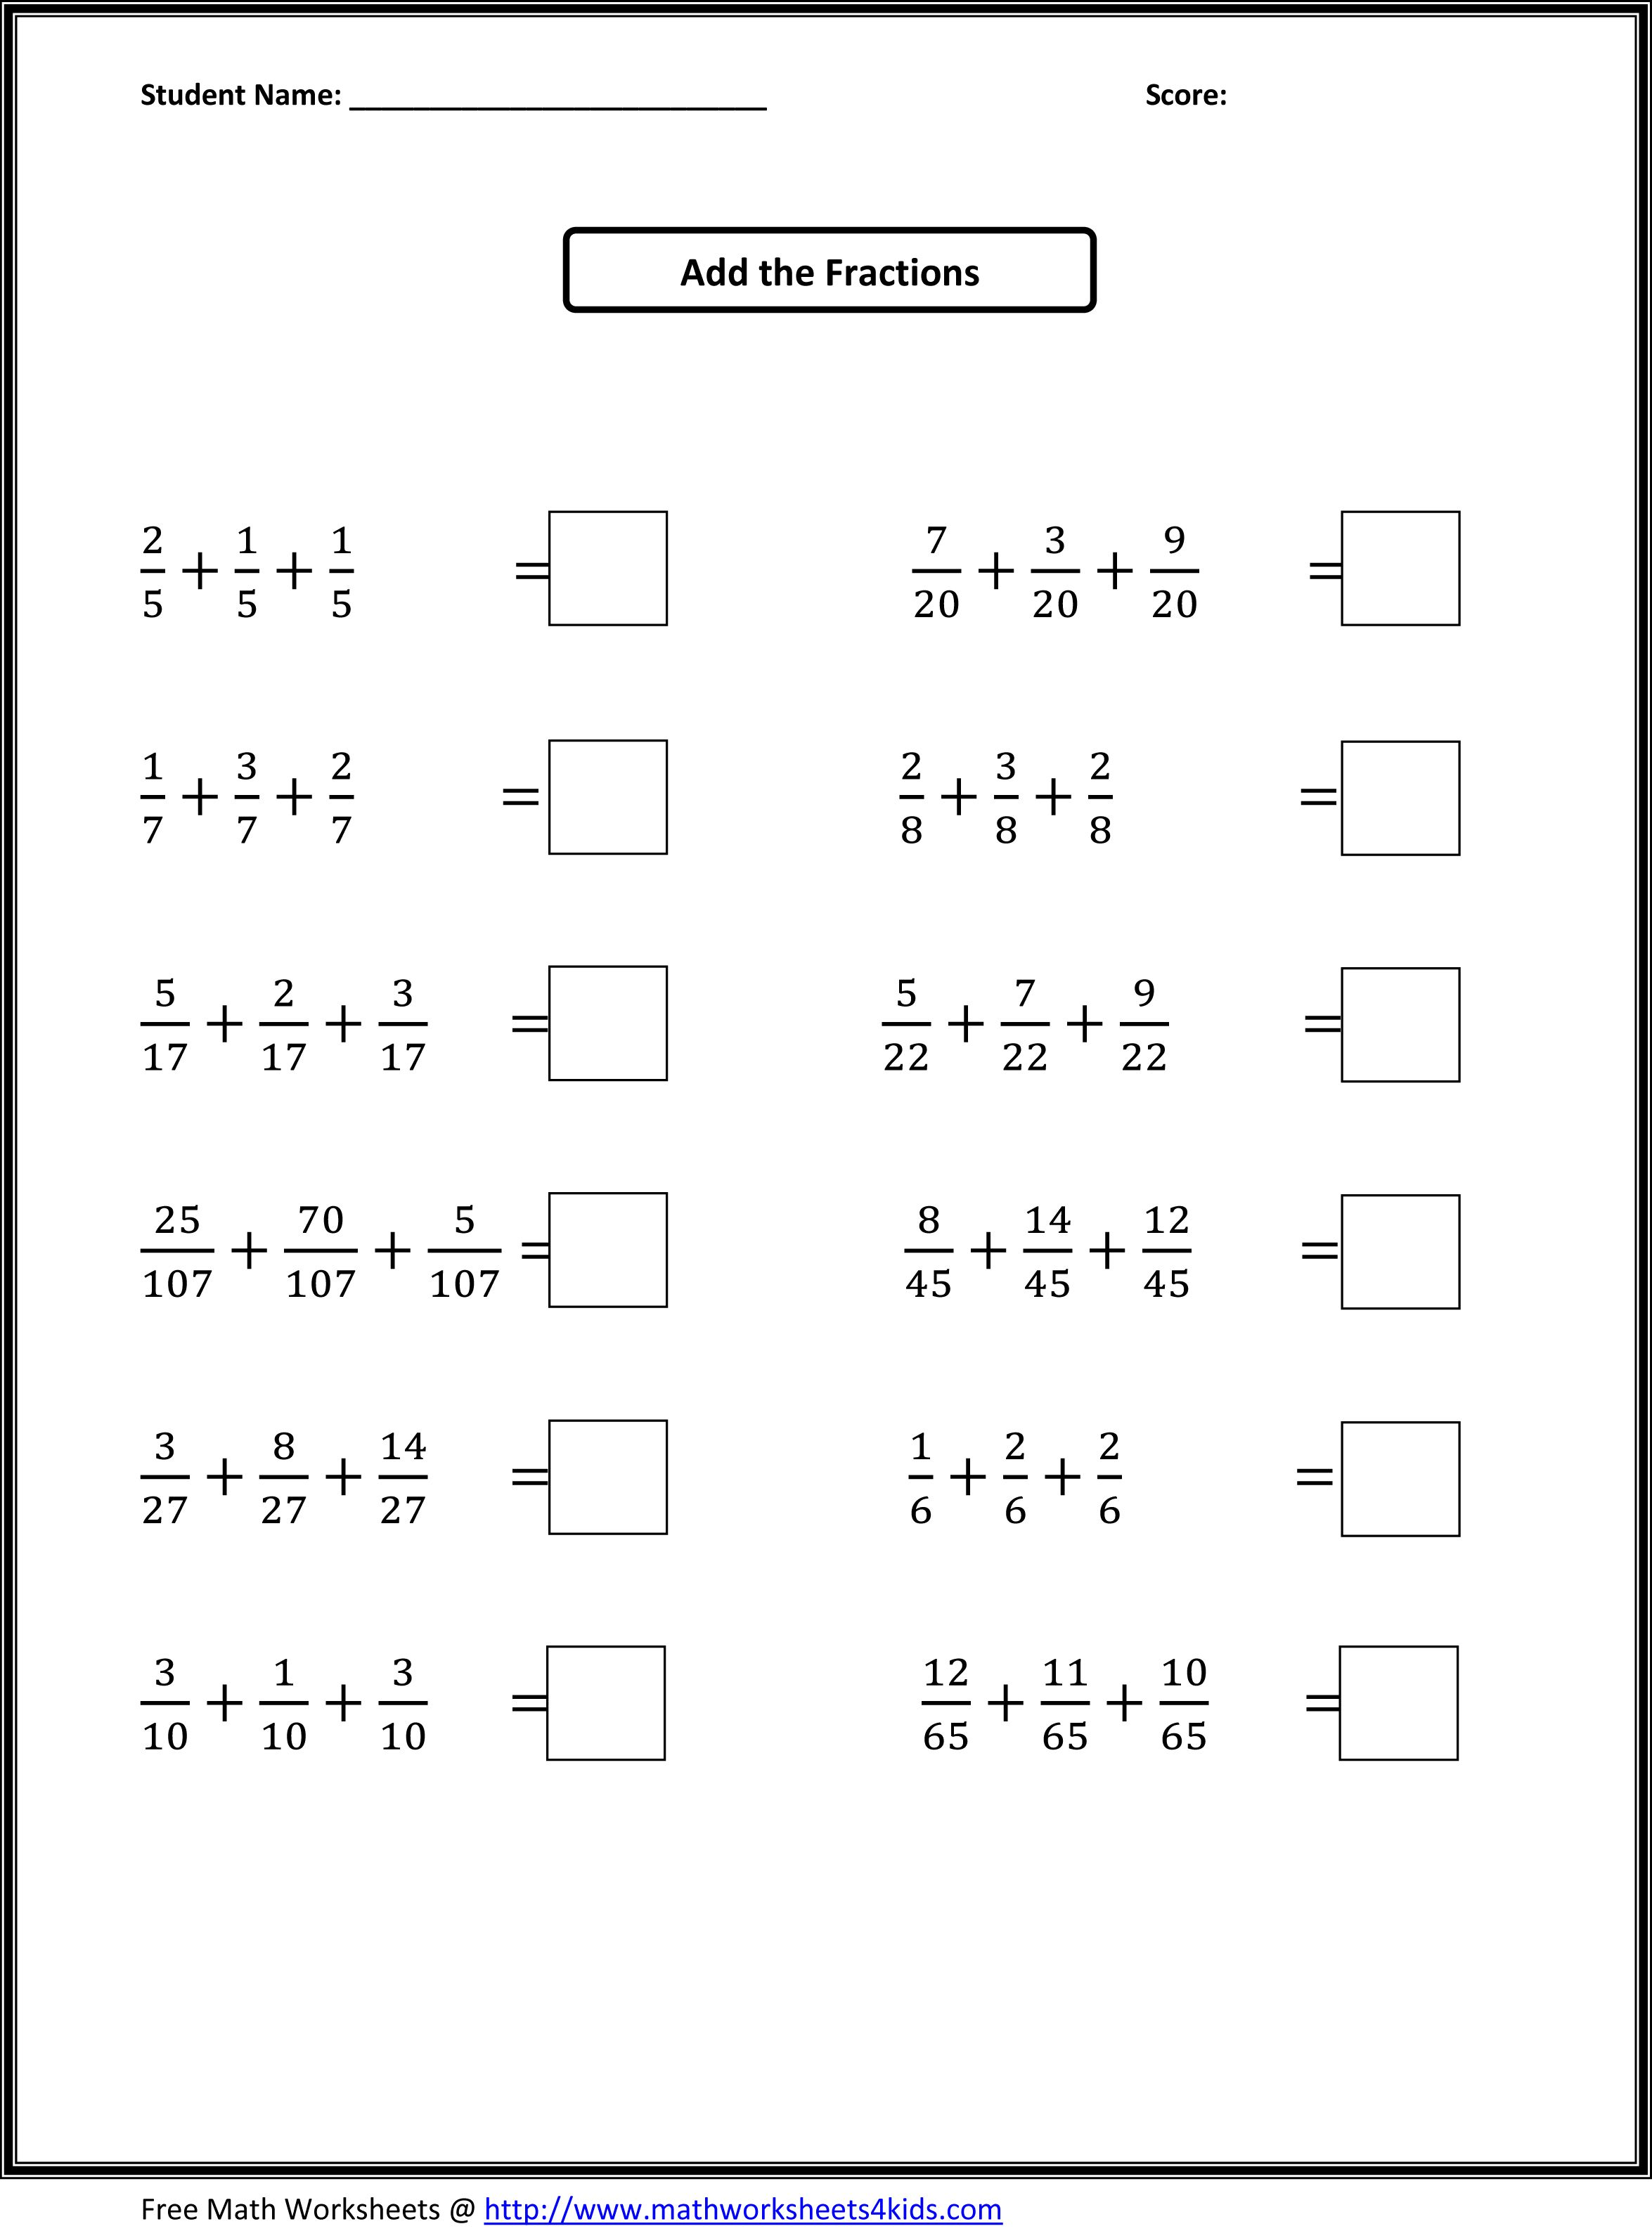 Worksheets Math Worksheets For Fourth Graders worksheets for all early ed grades topics of math math